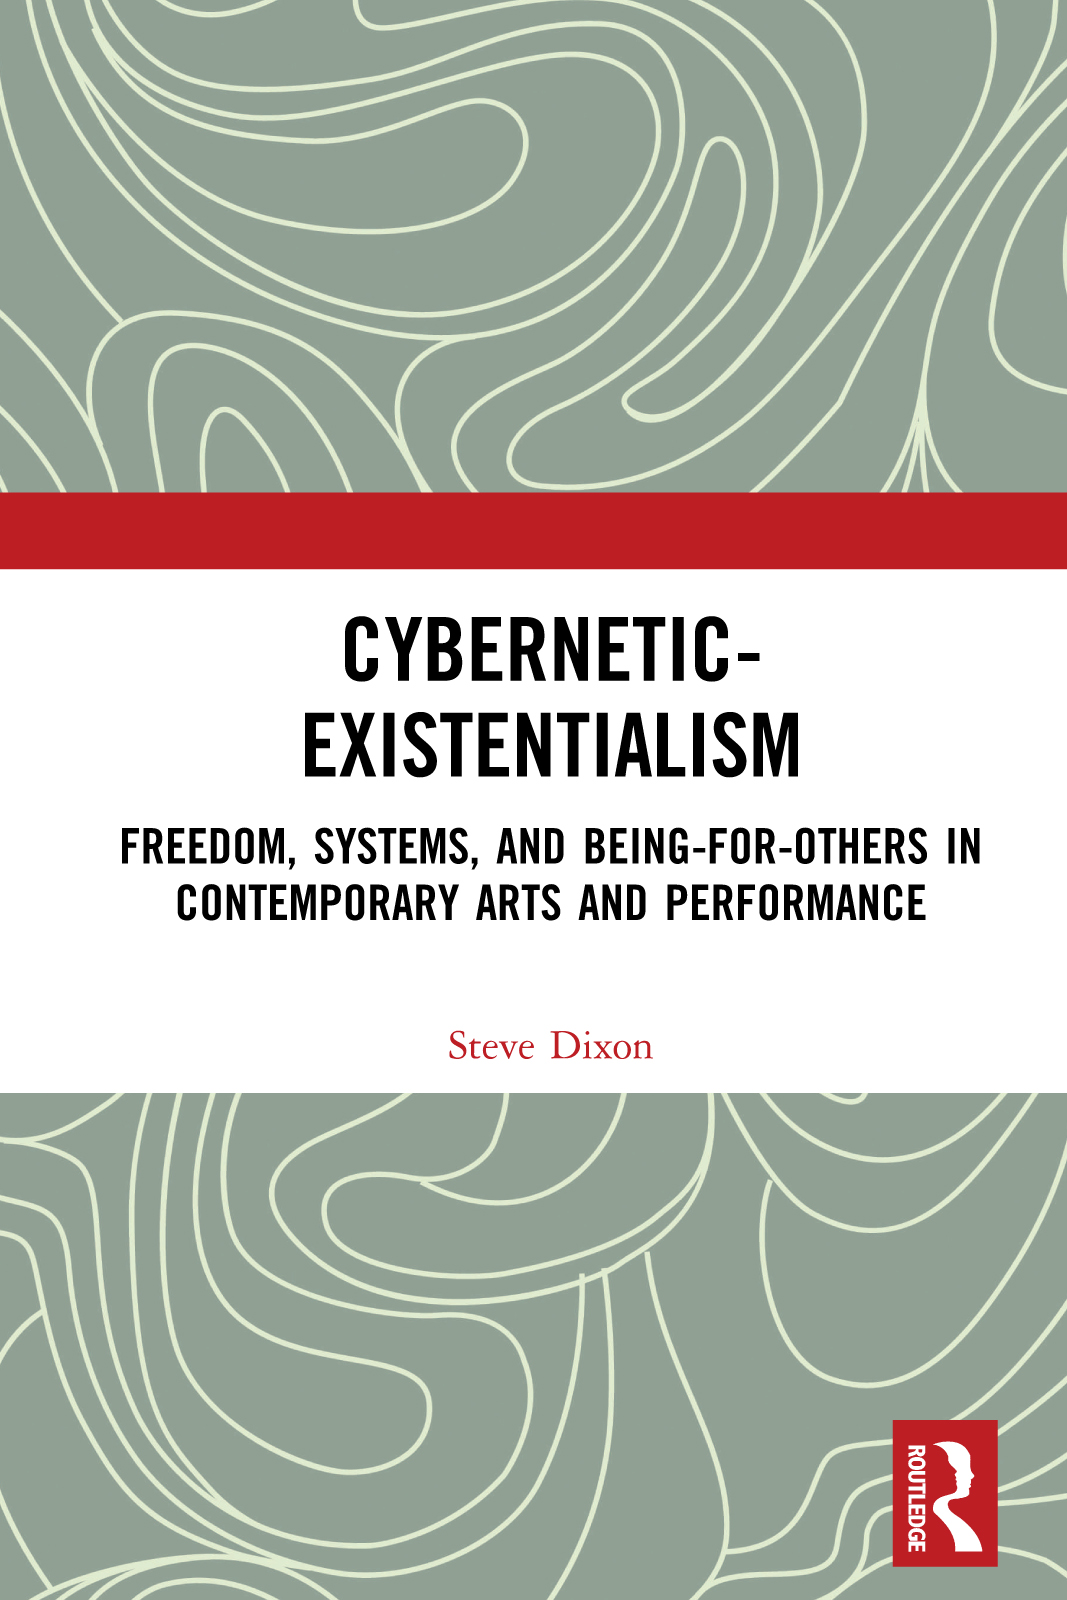 Cybernetic-Existentialism: Freedom, Systems, and Being-for-Others in Contemporary Arts and Performance book cover